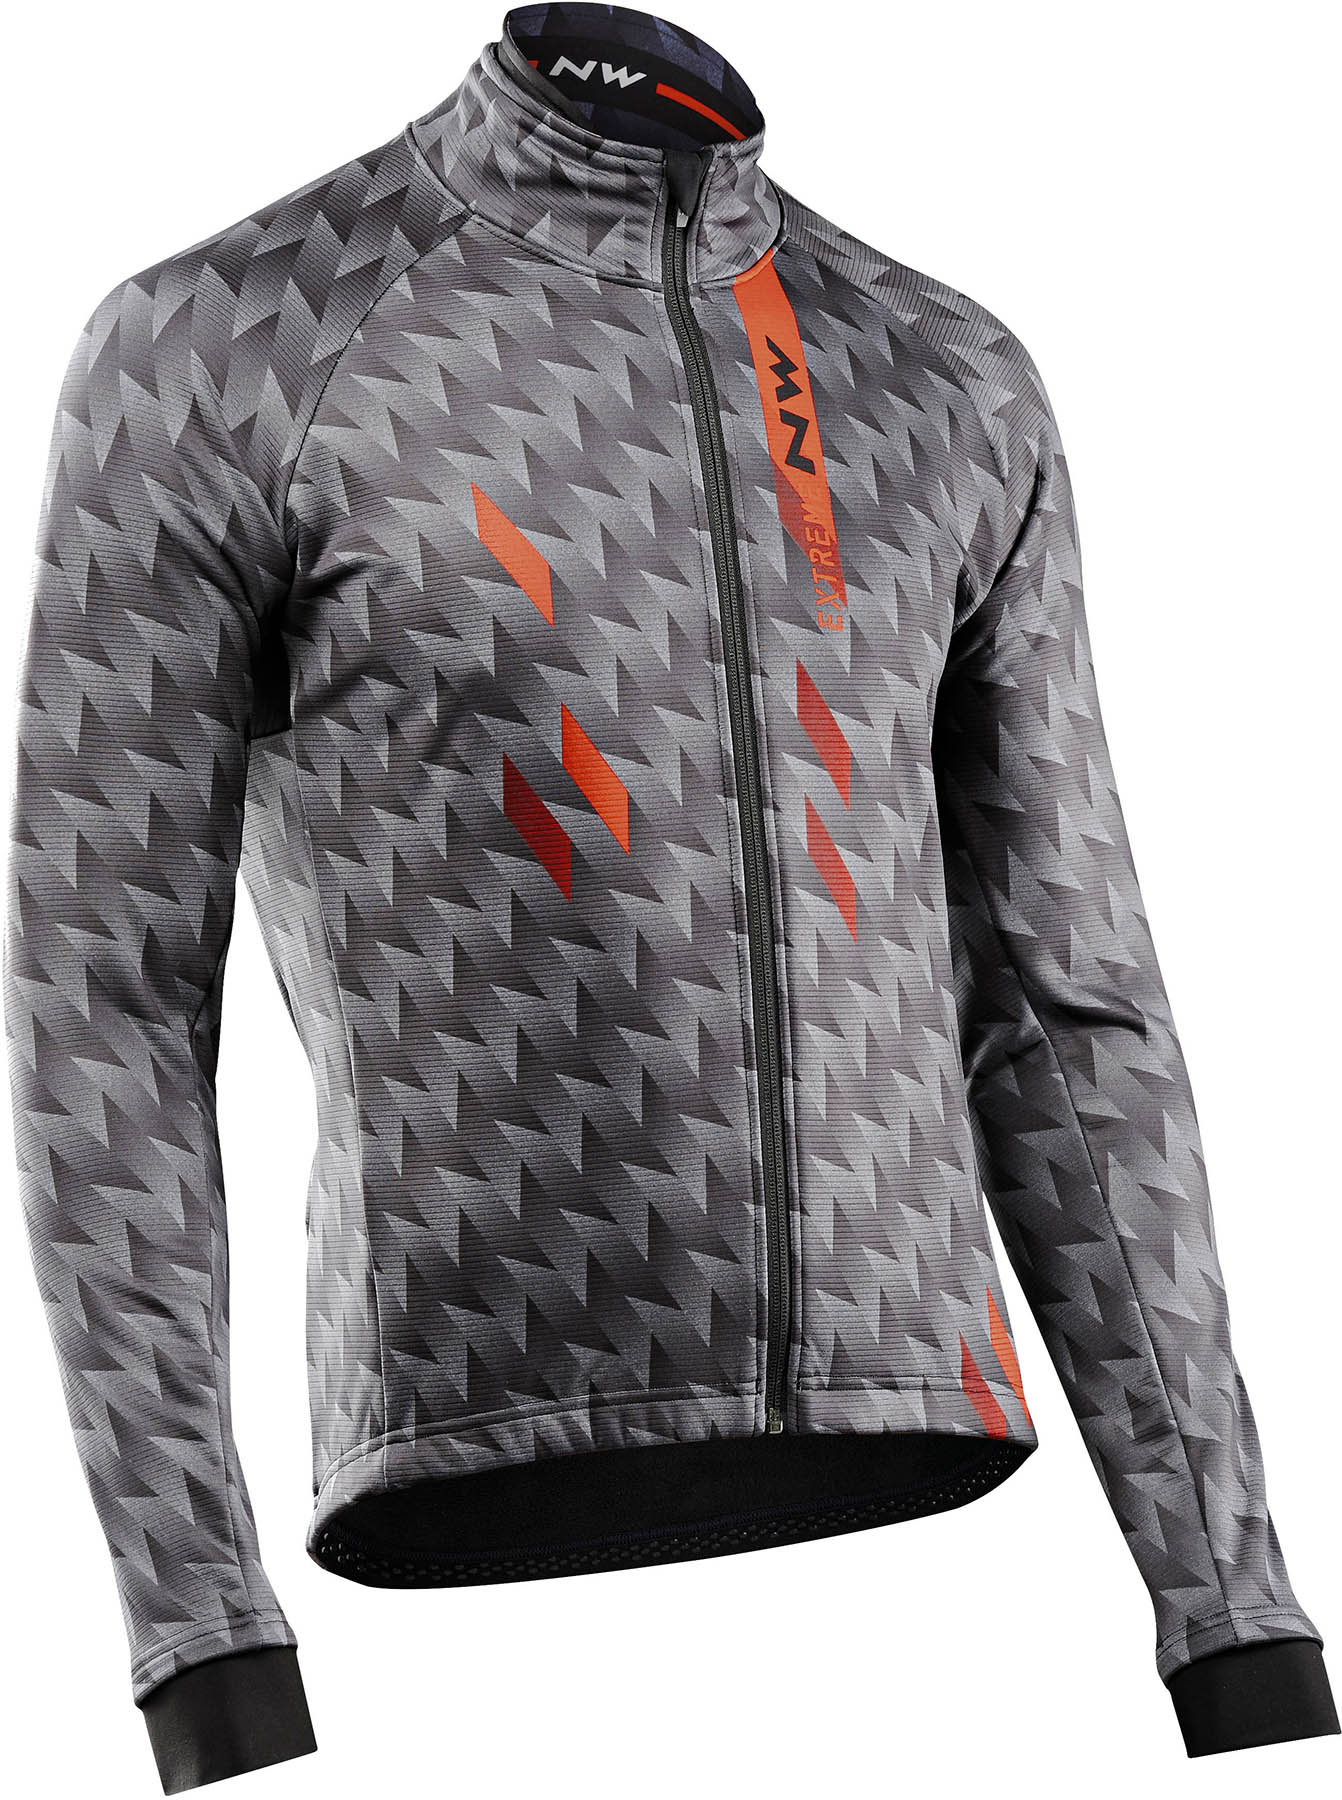 Northwave Extreme 3 Jacket L/S Total Protection | Jackets